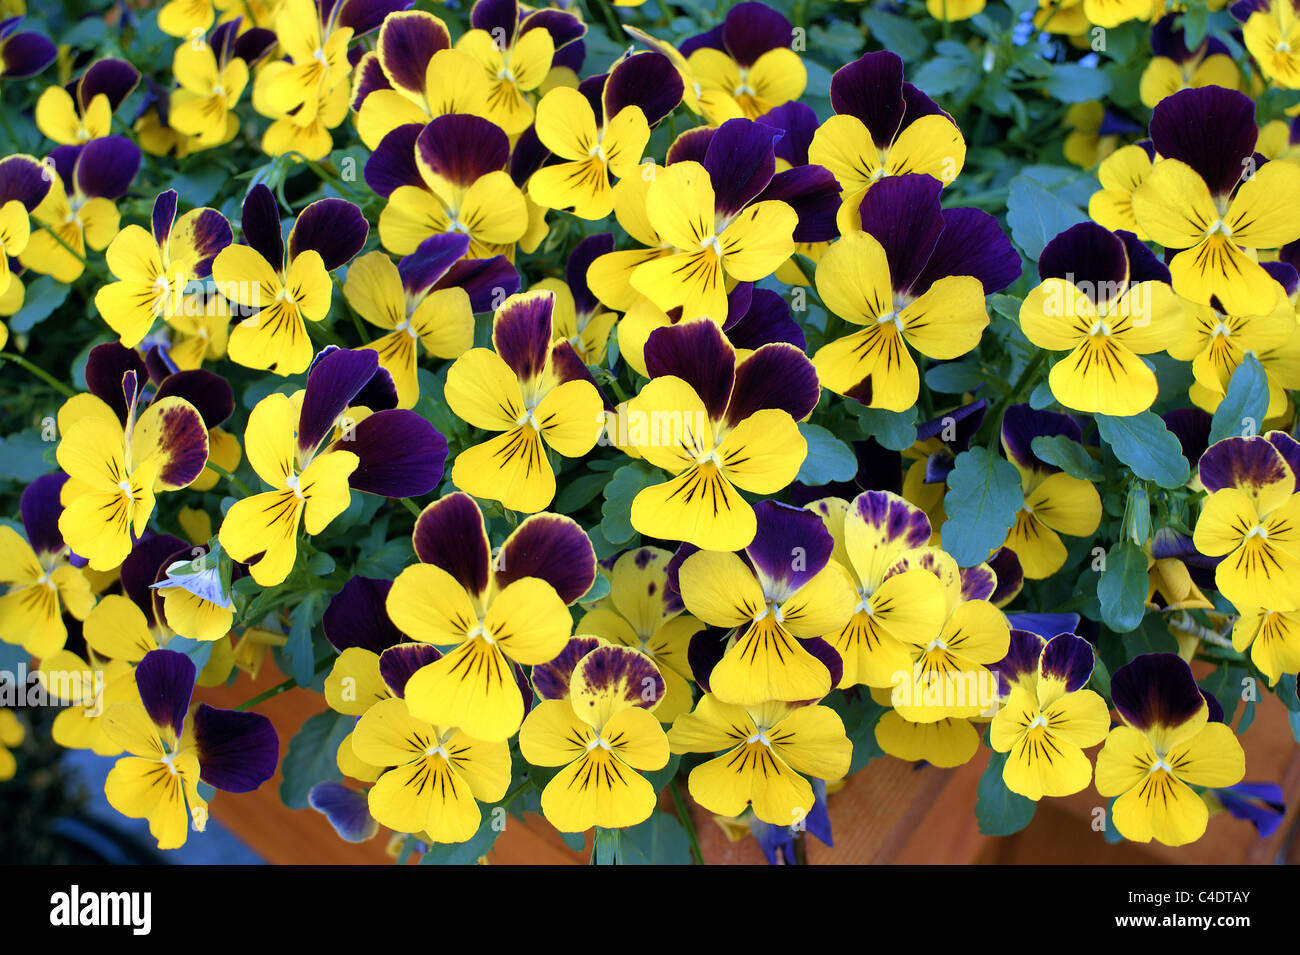 Yellow pansies pansy Viola tricolor - Stock Image